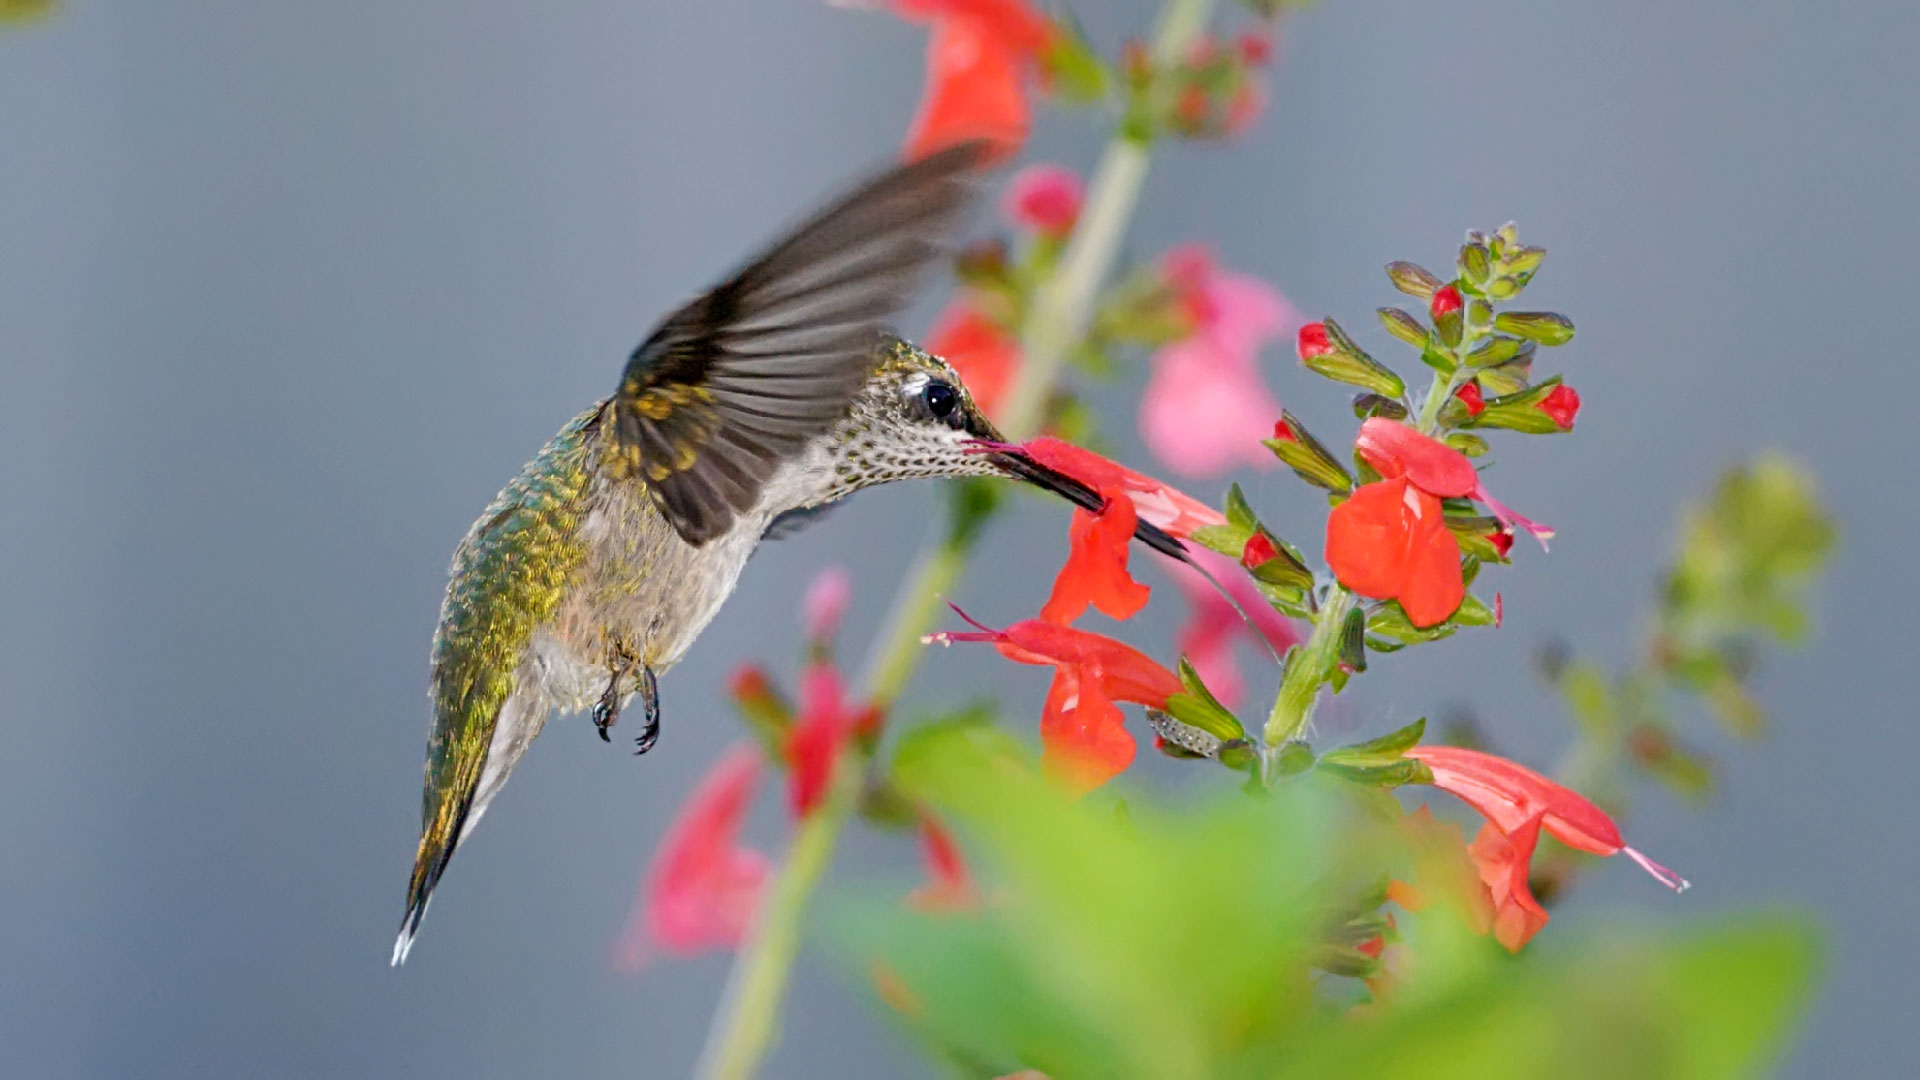 Hummingbirds…life is rich, beauty is everywhere, every personal connection has meaning